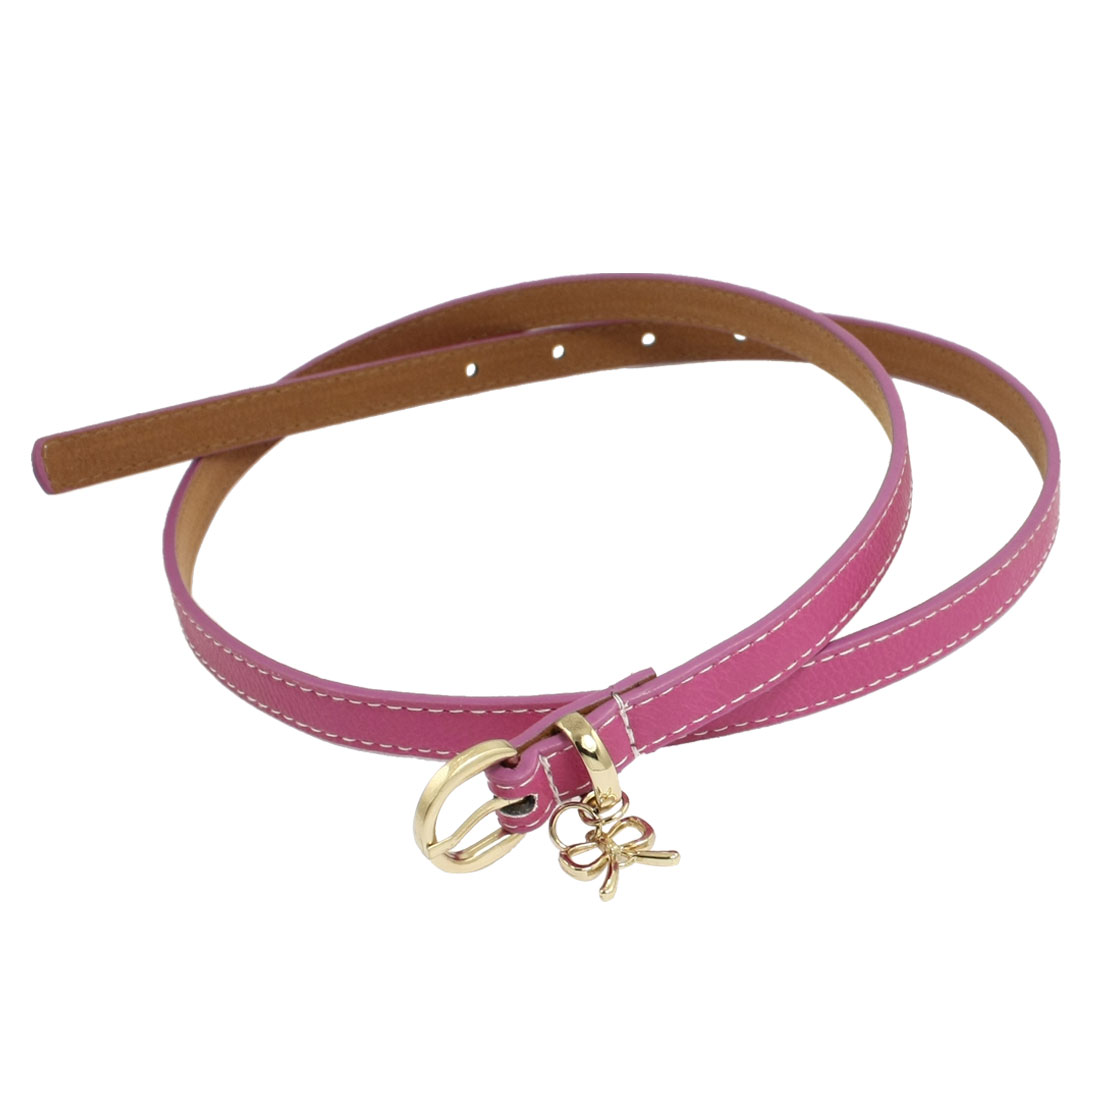 Ladies One Pin Buckle Adjustable Fuchsia Faux Leather Thin Waist Belt 1.3cm Wide